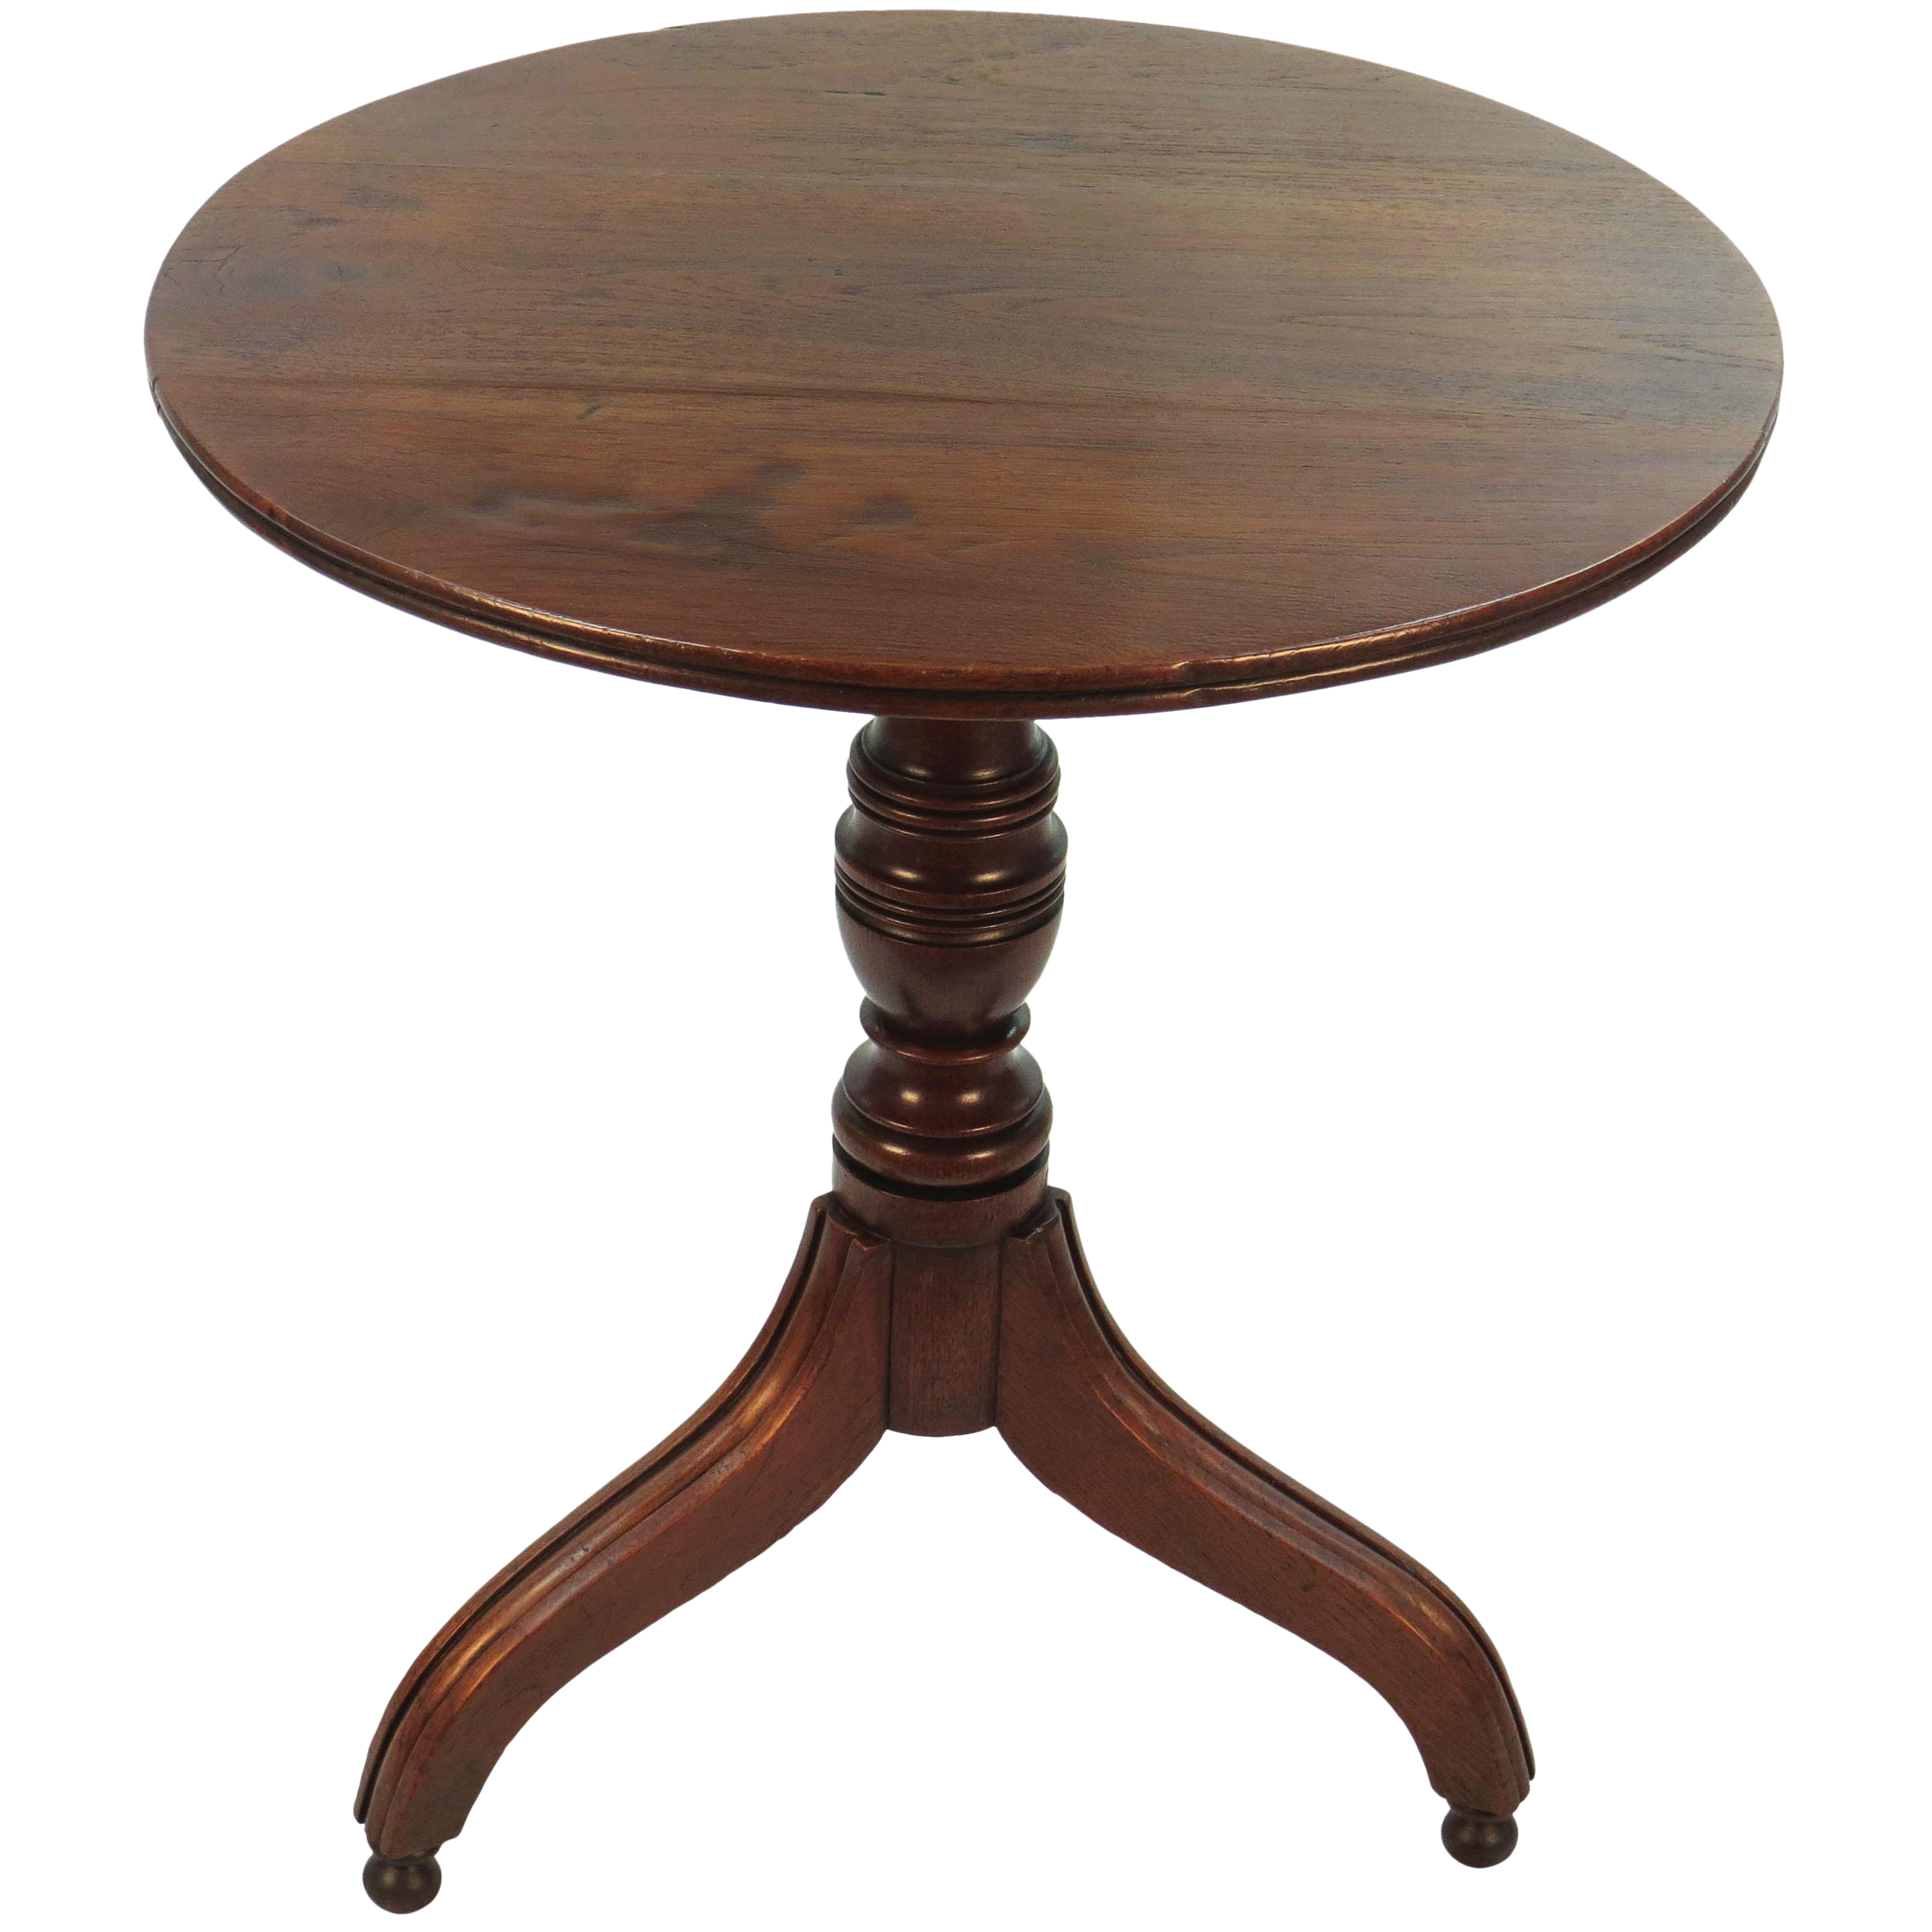 victorian period round tripod accent table chairish sofa ikea the range coffee tables battery powered bedside lamp runner sewing pattern glass top end side marble small furniture